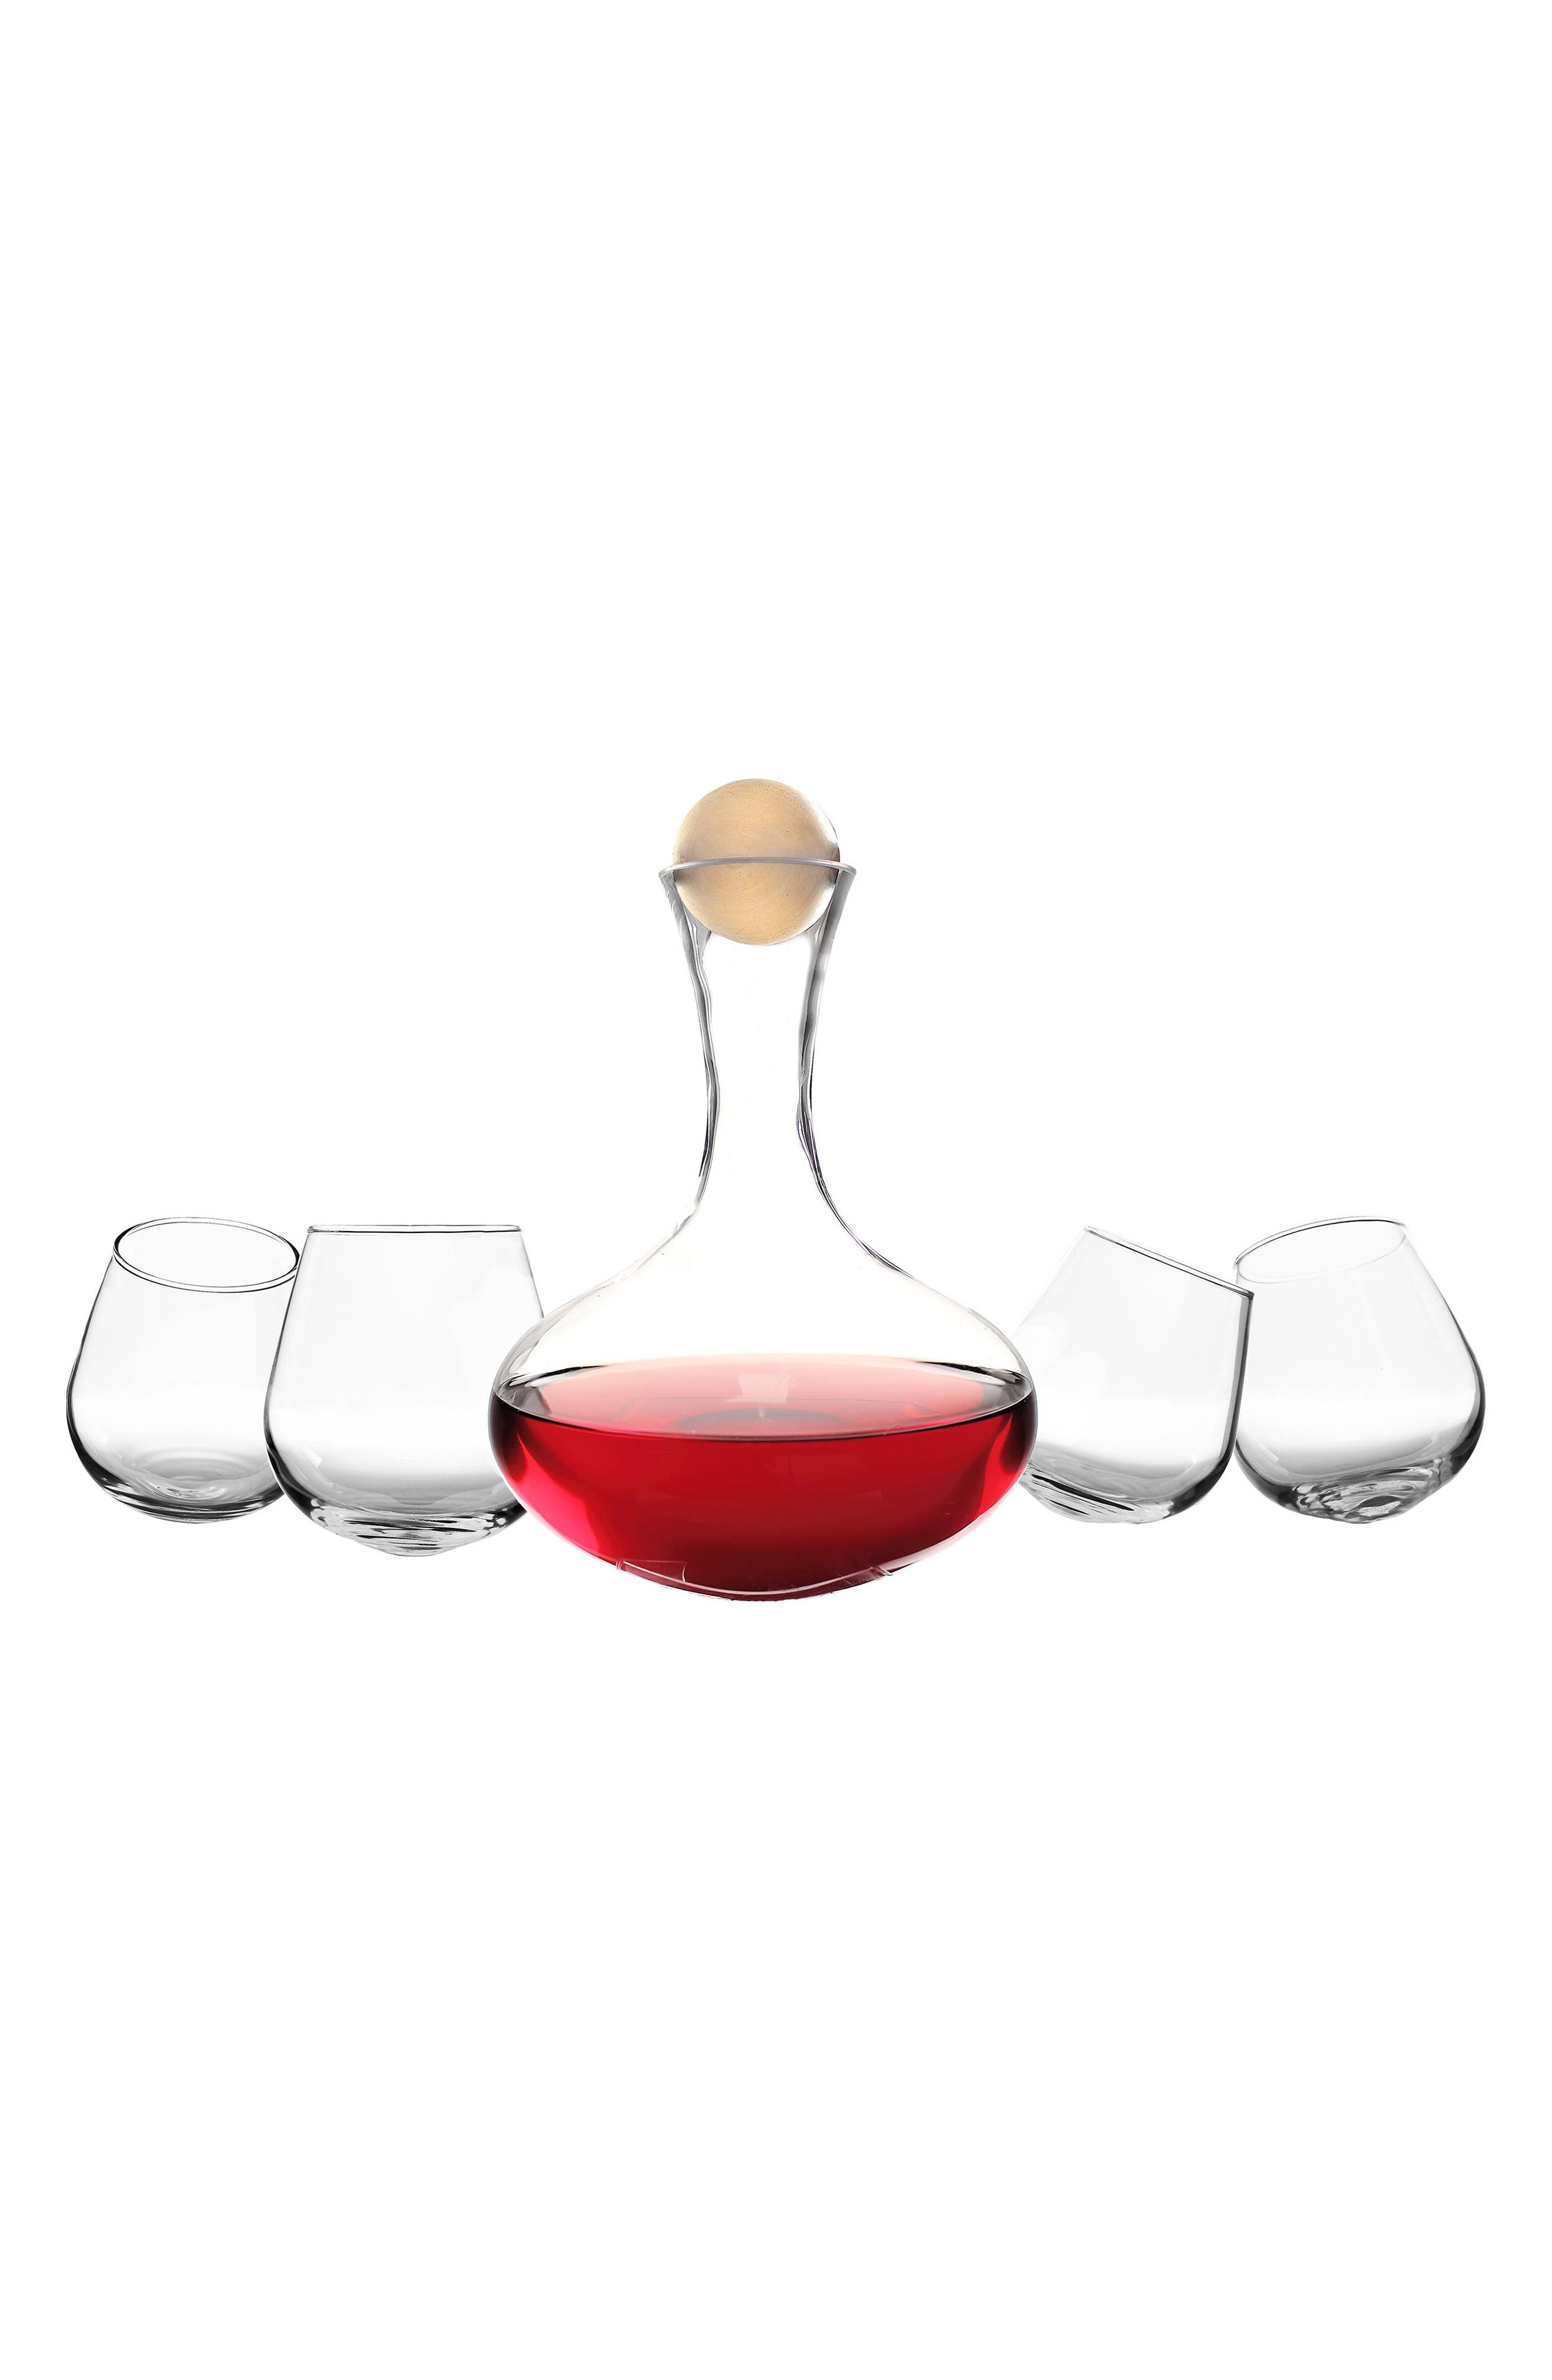 'Tipsy' Monogram Wine Decanter & Stemless Glasses,                         Main,                         color, 100